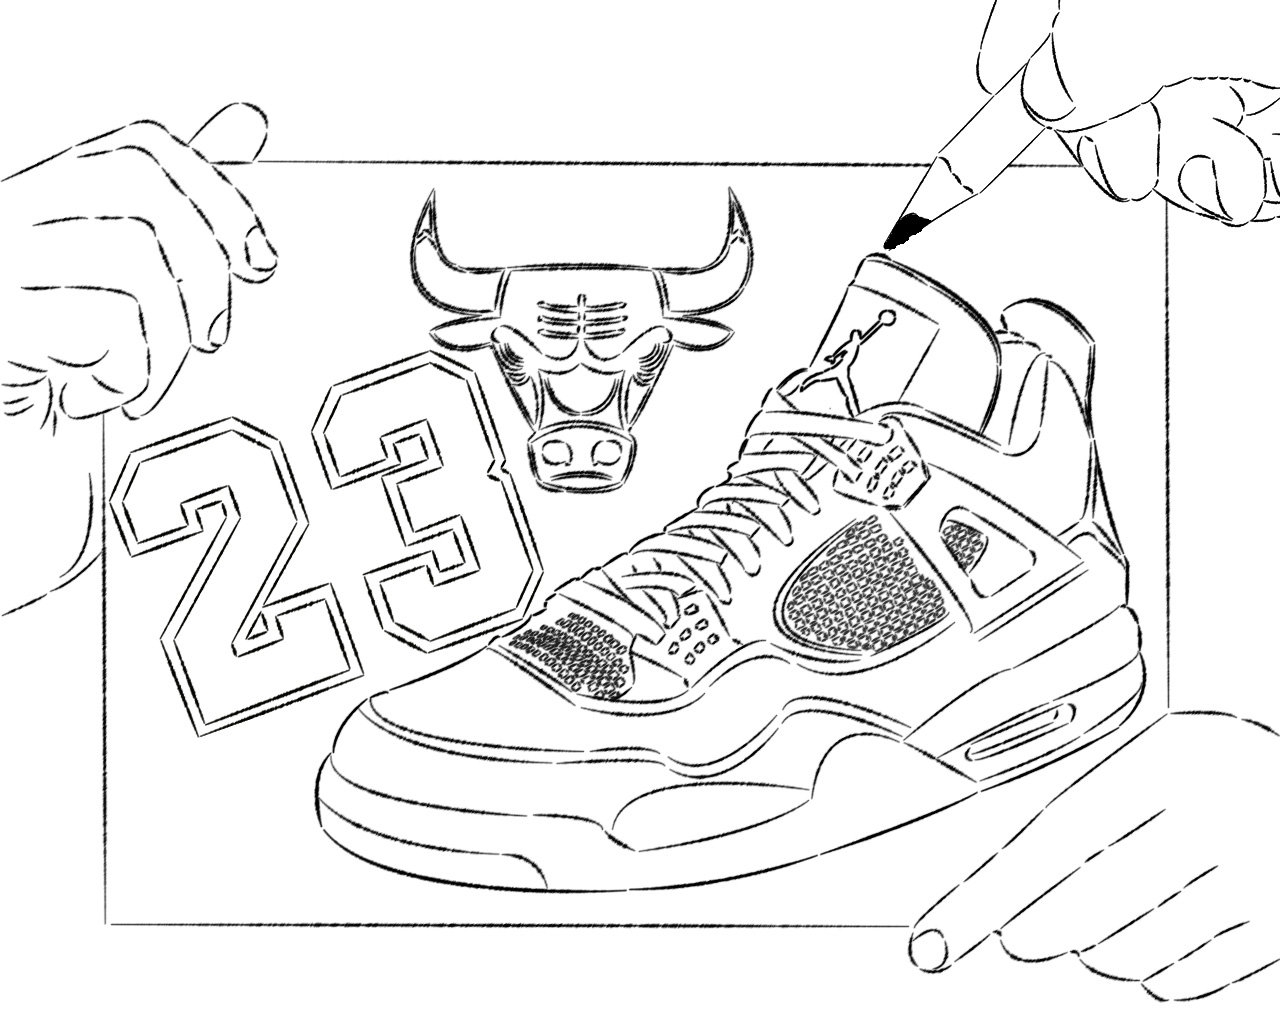 1280x1024 Printable Jordan Shoe Coloring Pages Free Coloring Pages Download